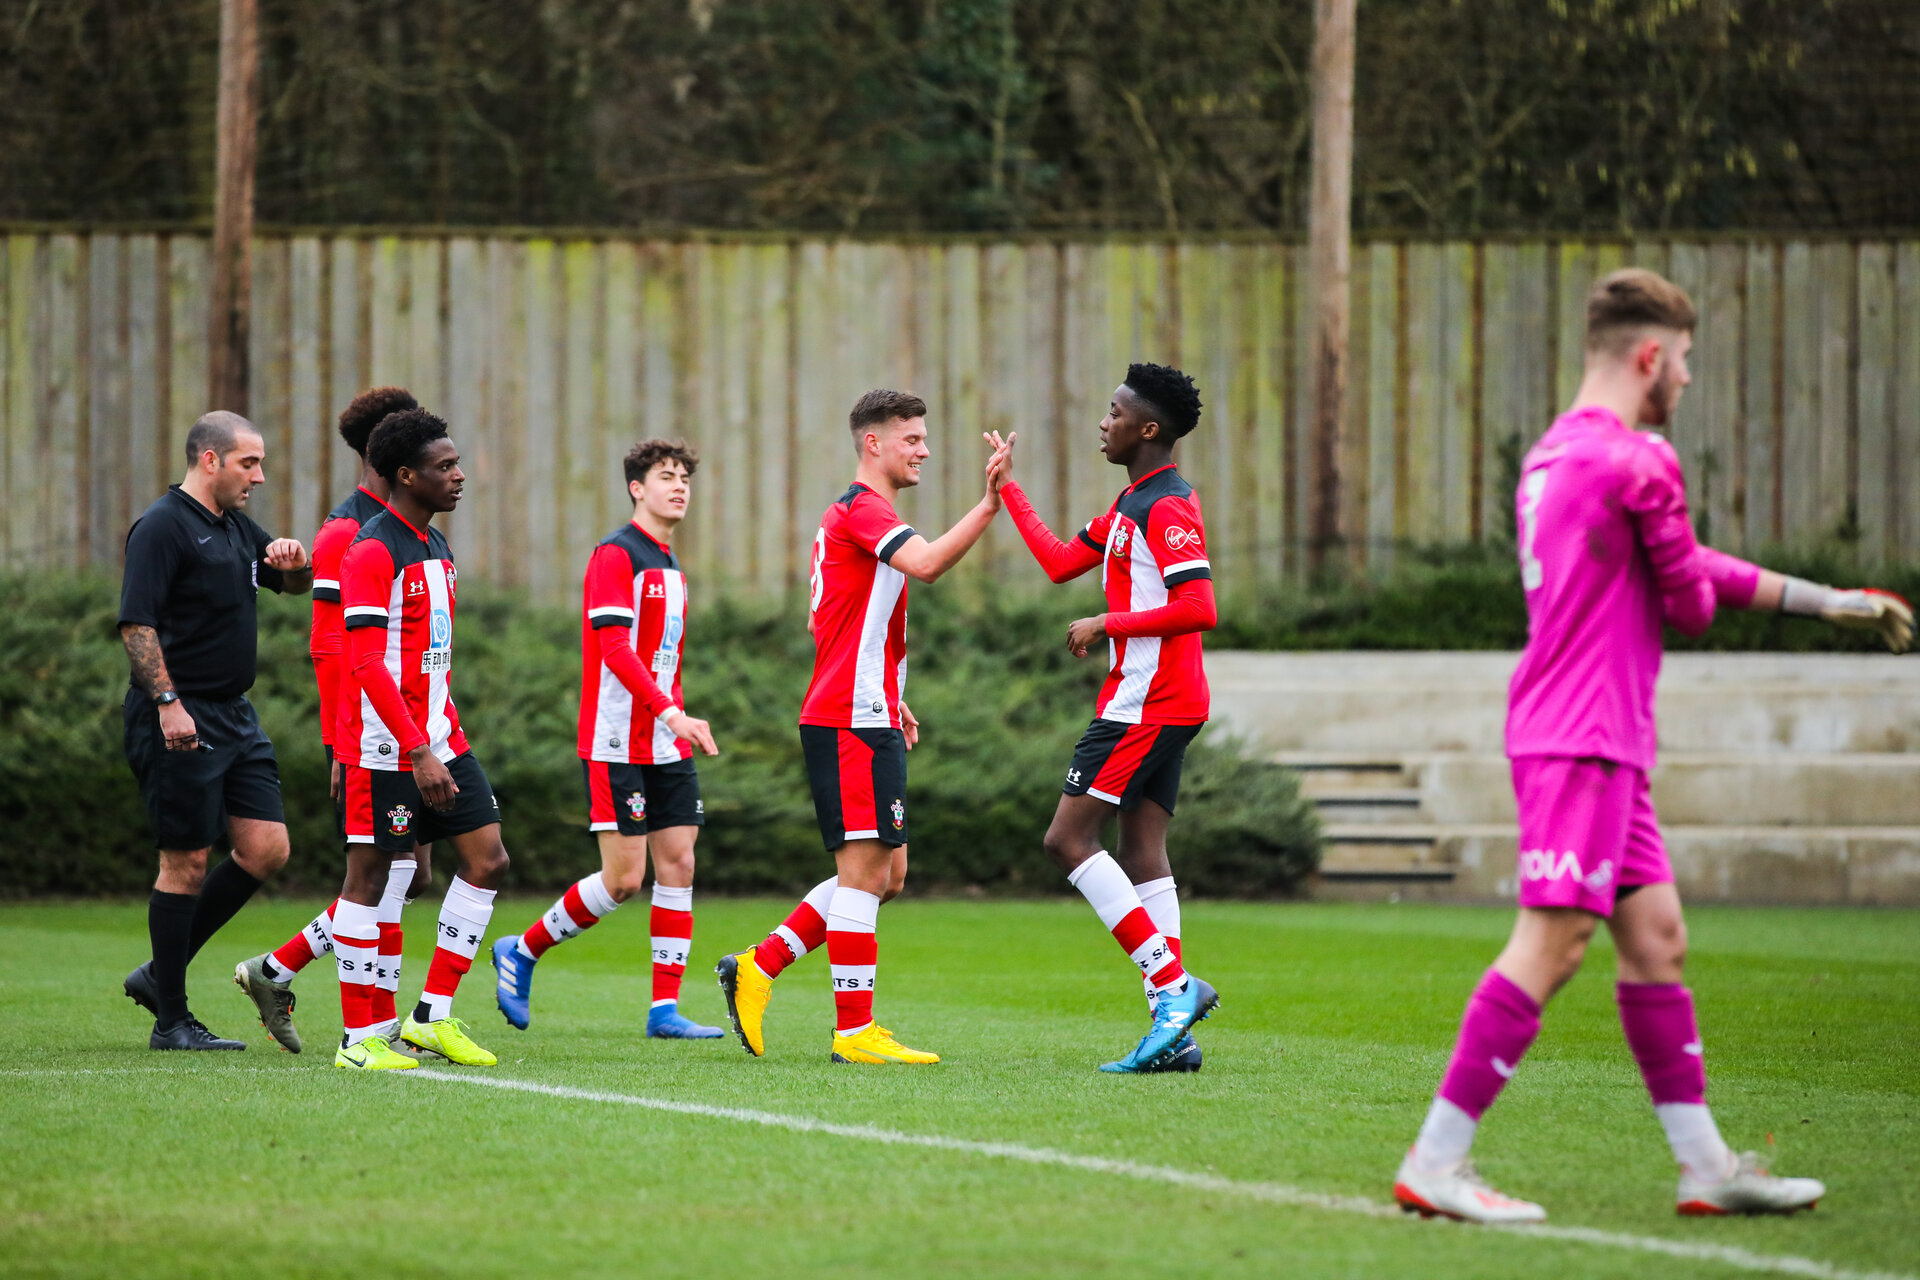 SOUTHAMPTON, ENGLAND - JANUARY 23: Jack Turner of Southampton FC celebrates with teammates after scoring his second goal and his side's third goal during the Barclays Under 18 Premier League match between Southampton FC and Swansea City at the Staplewood Campus on January 23, 2020 in Southampton, England